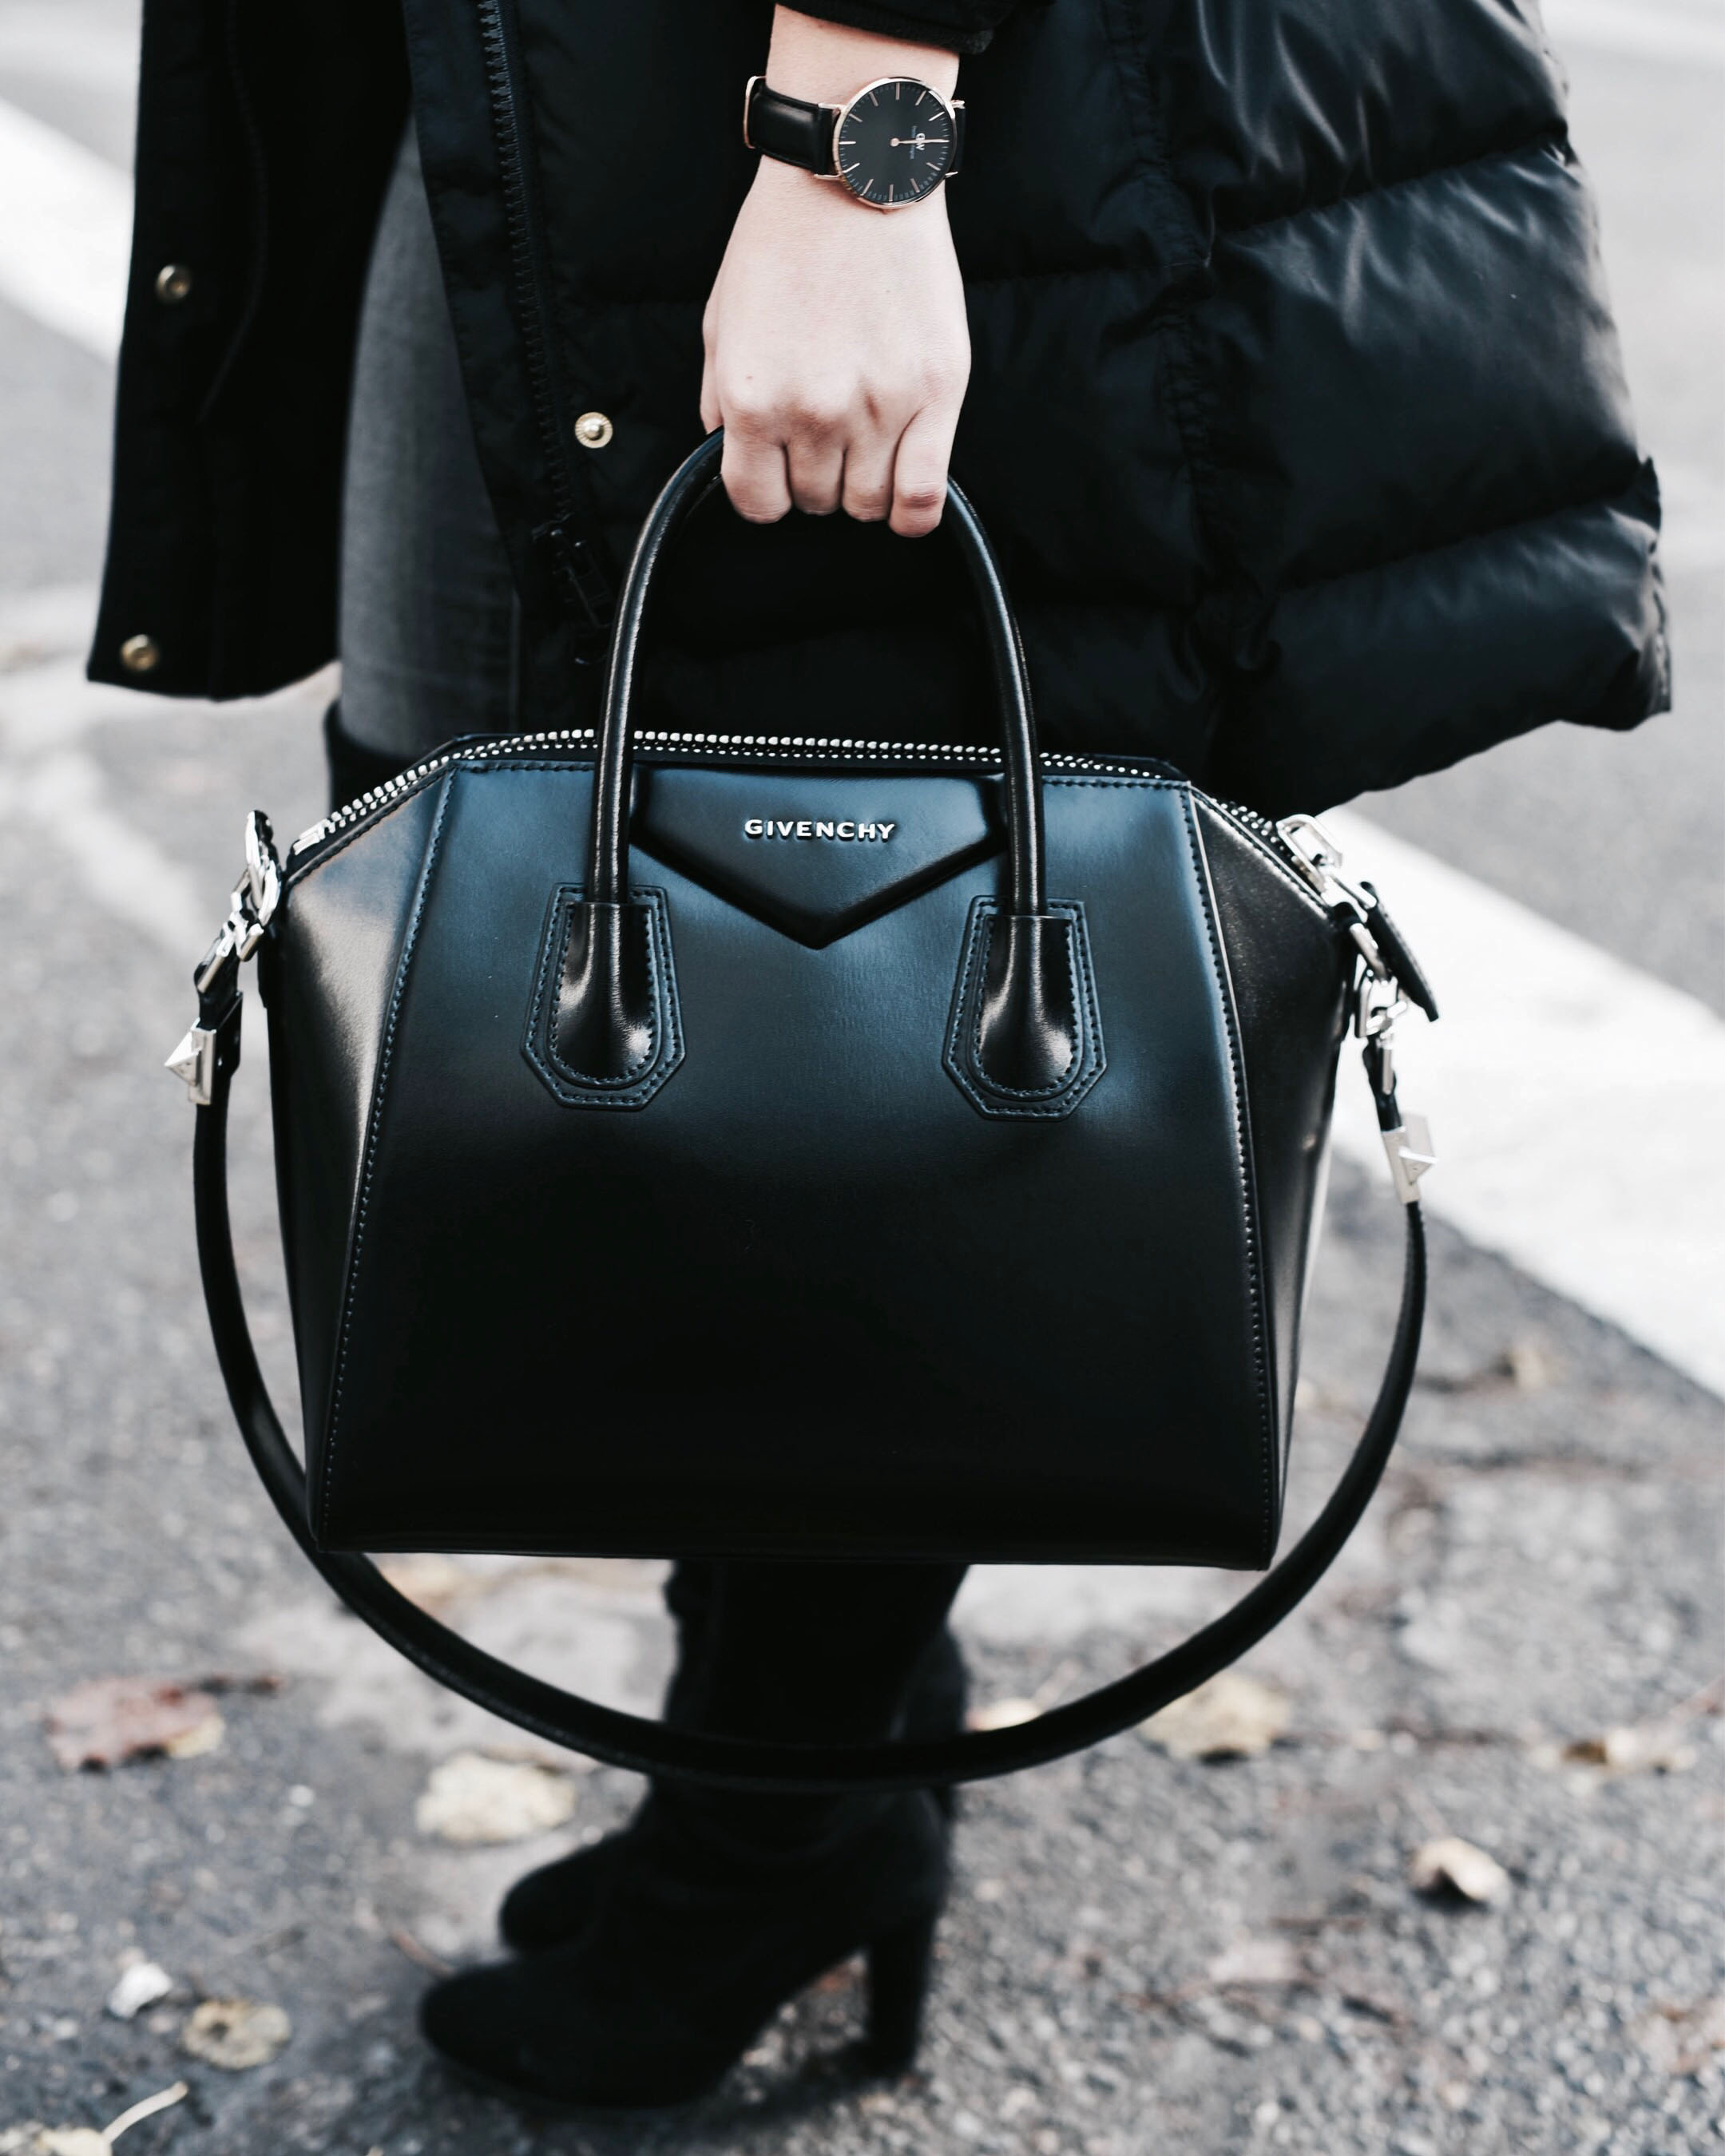 givenchy-satchel